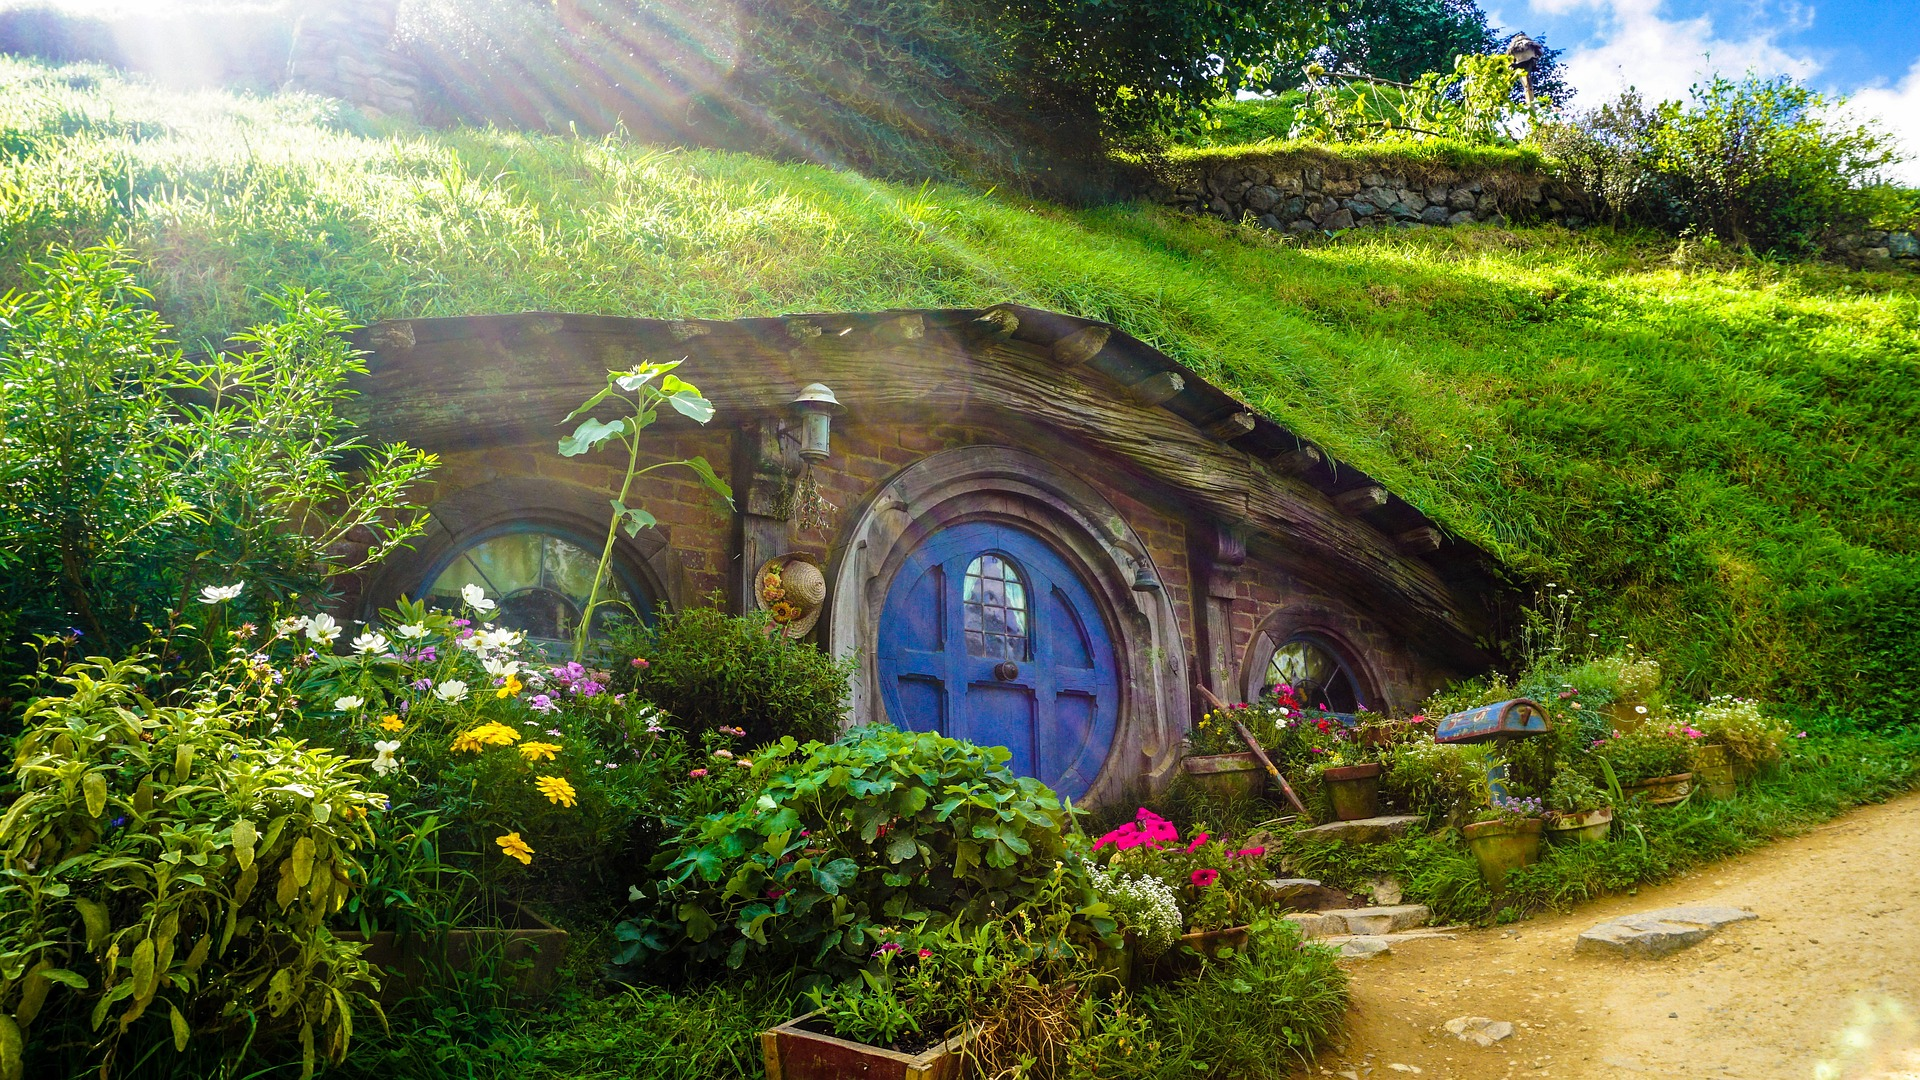 Lord of the rings house nieuw zeeland